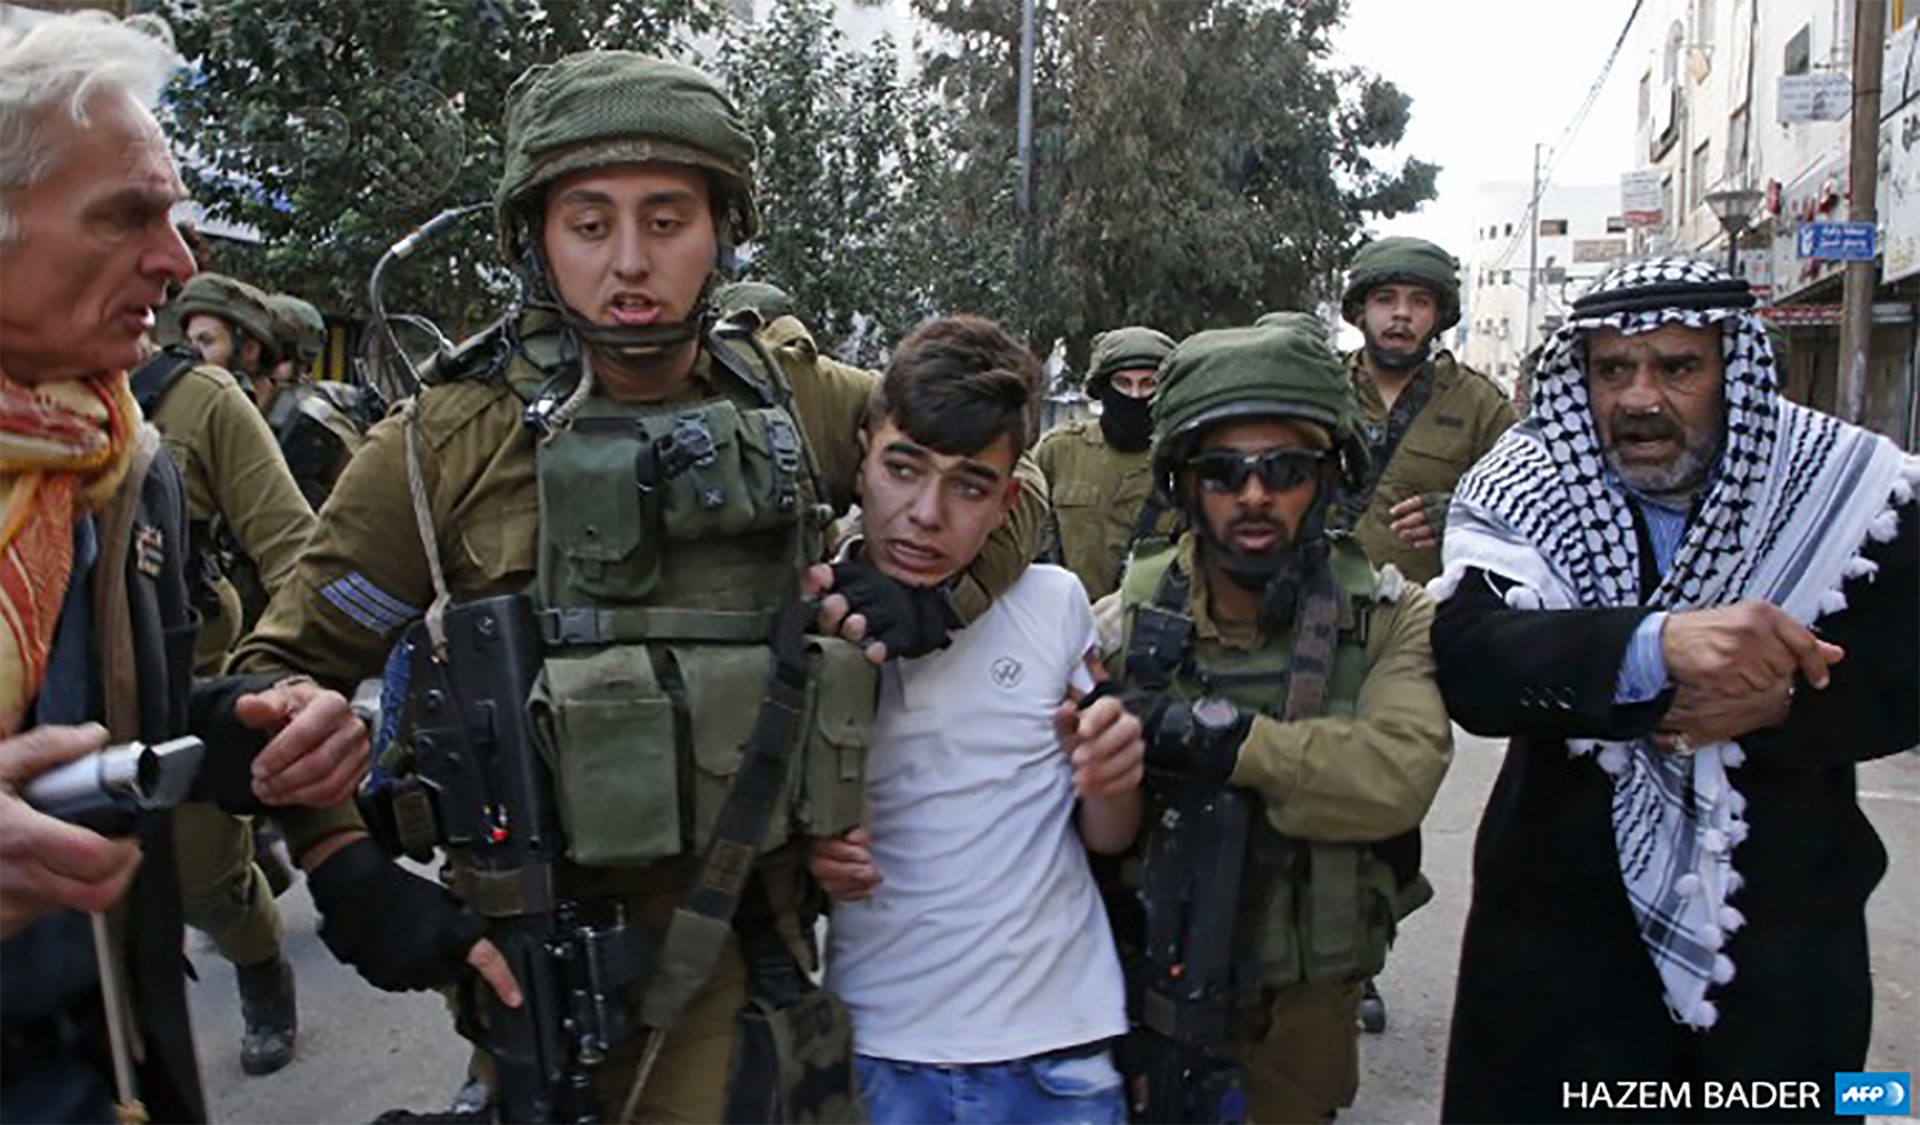 Violations against Palestinian children spike amid protests over U.S. Jerusalem move